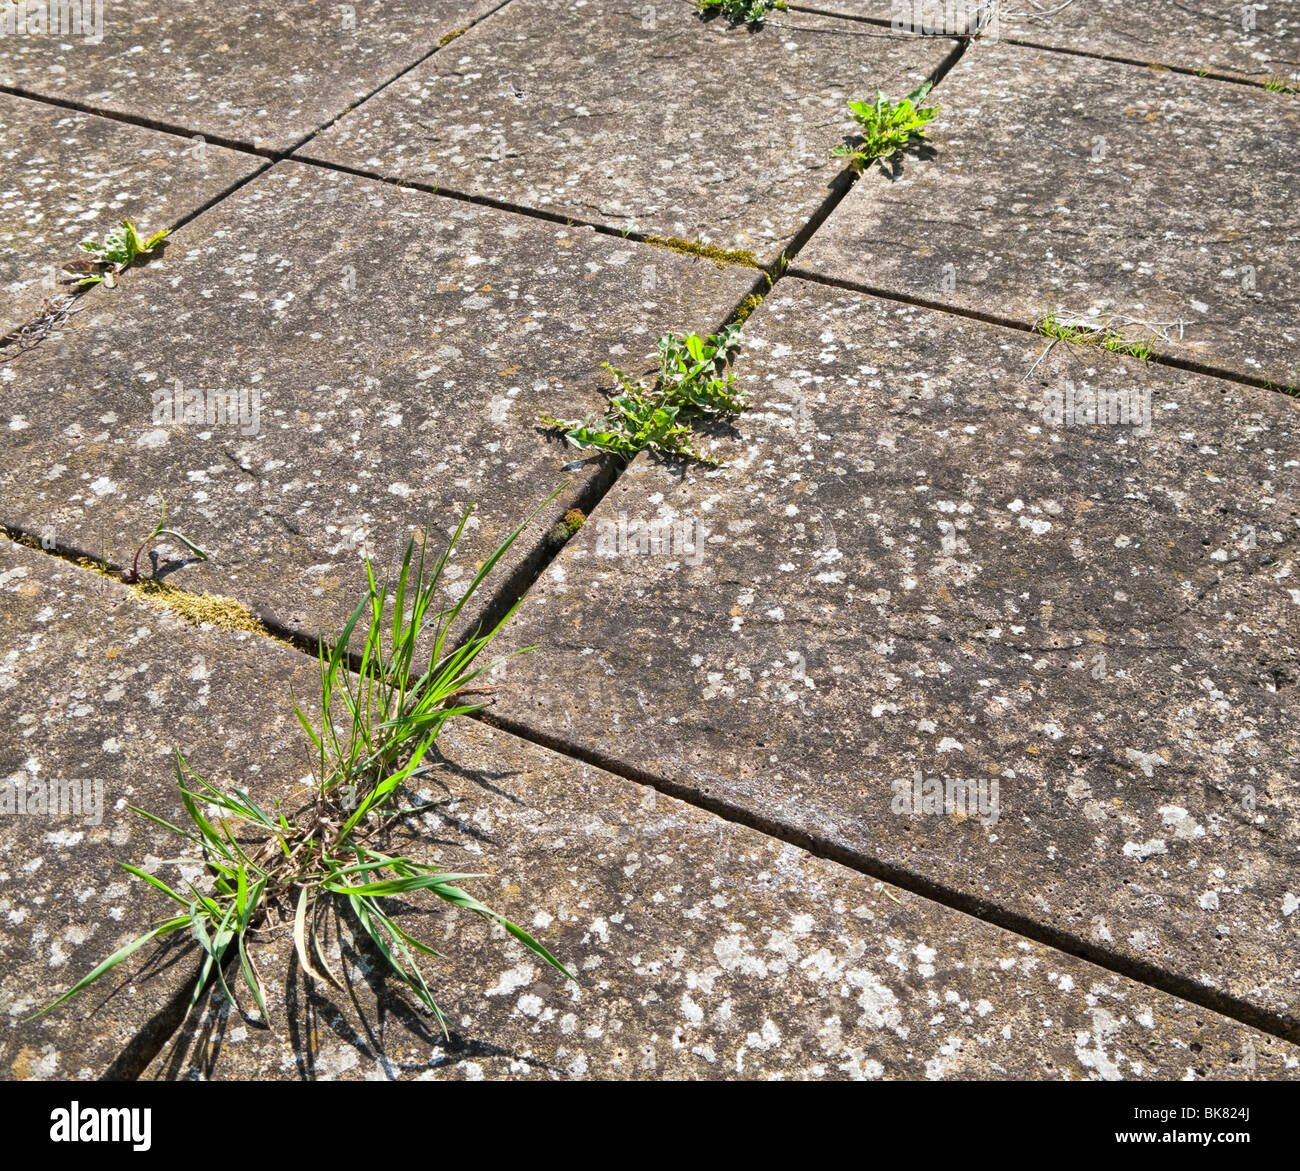 Common weeds growing in between paving slabs on a patio - Stock Image